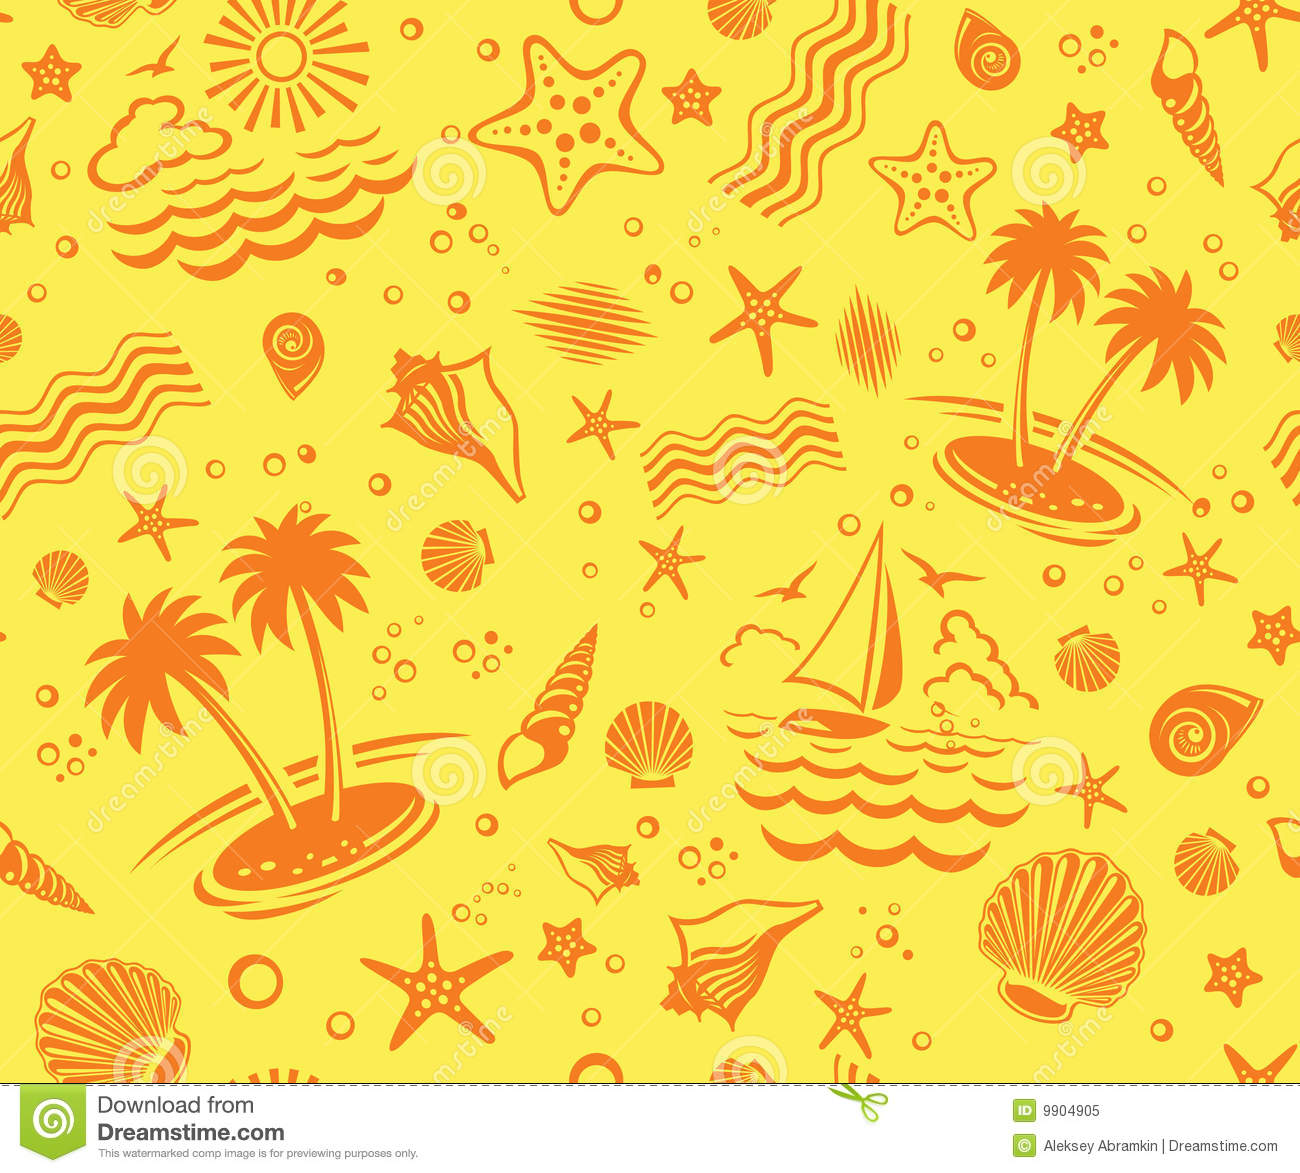 Seamless Beach Vector Pattern Stock Vector - Image: 9904905 Tropical Print Background